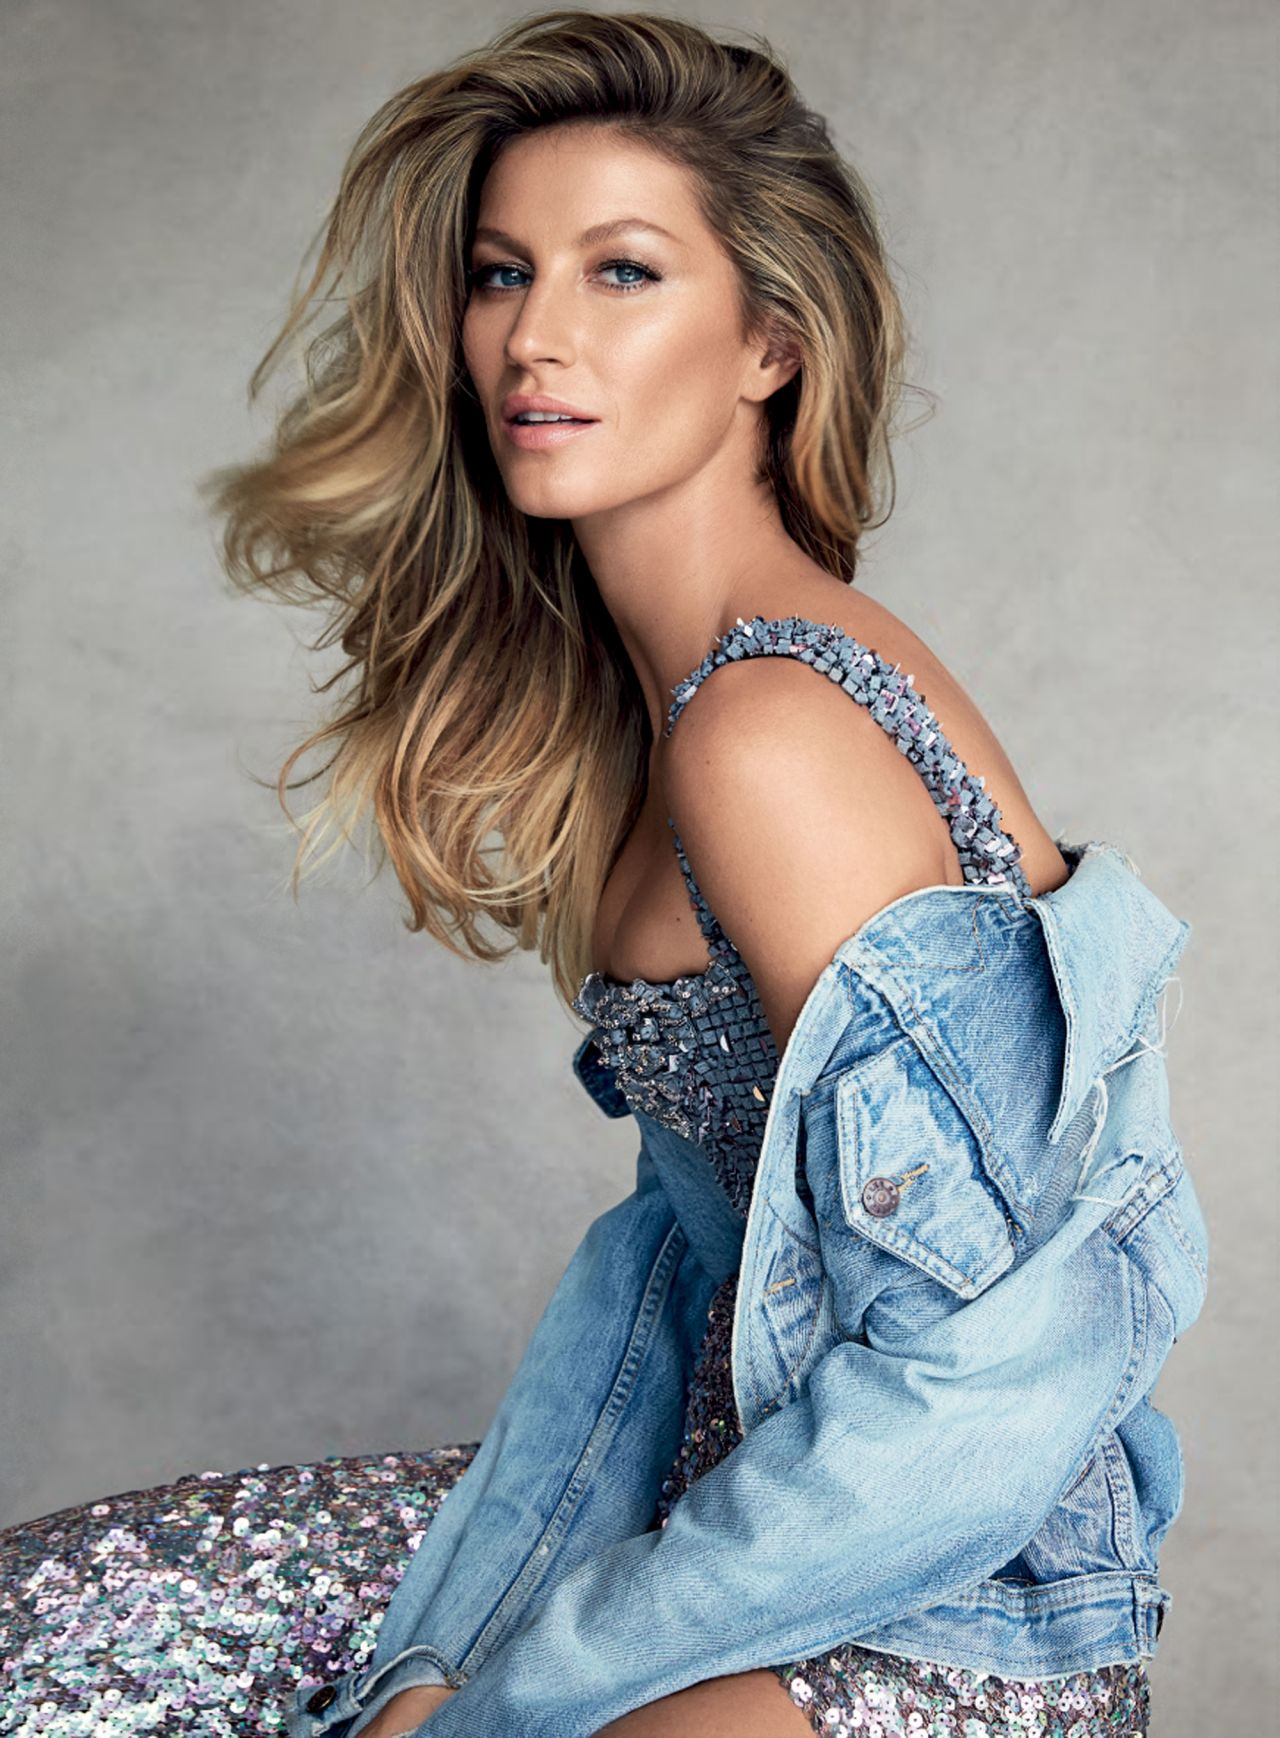 Gisele Bundchen Photoshoot for Vogue Magazine (Australia ... Gisele Bundchen